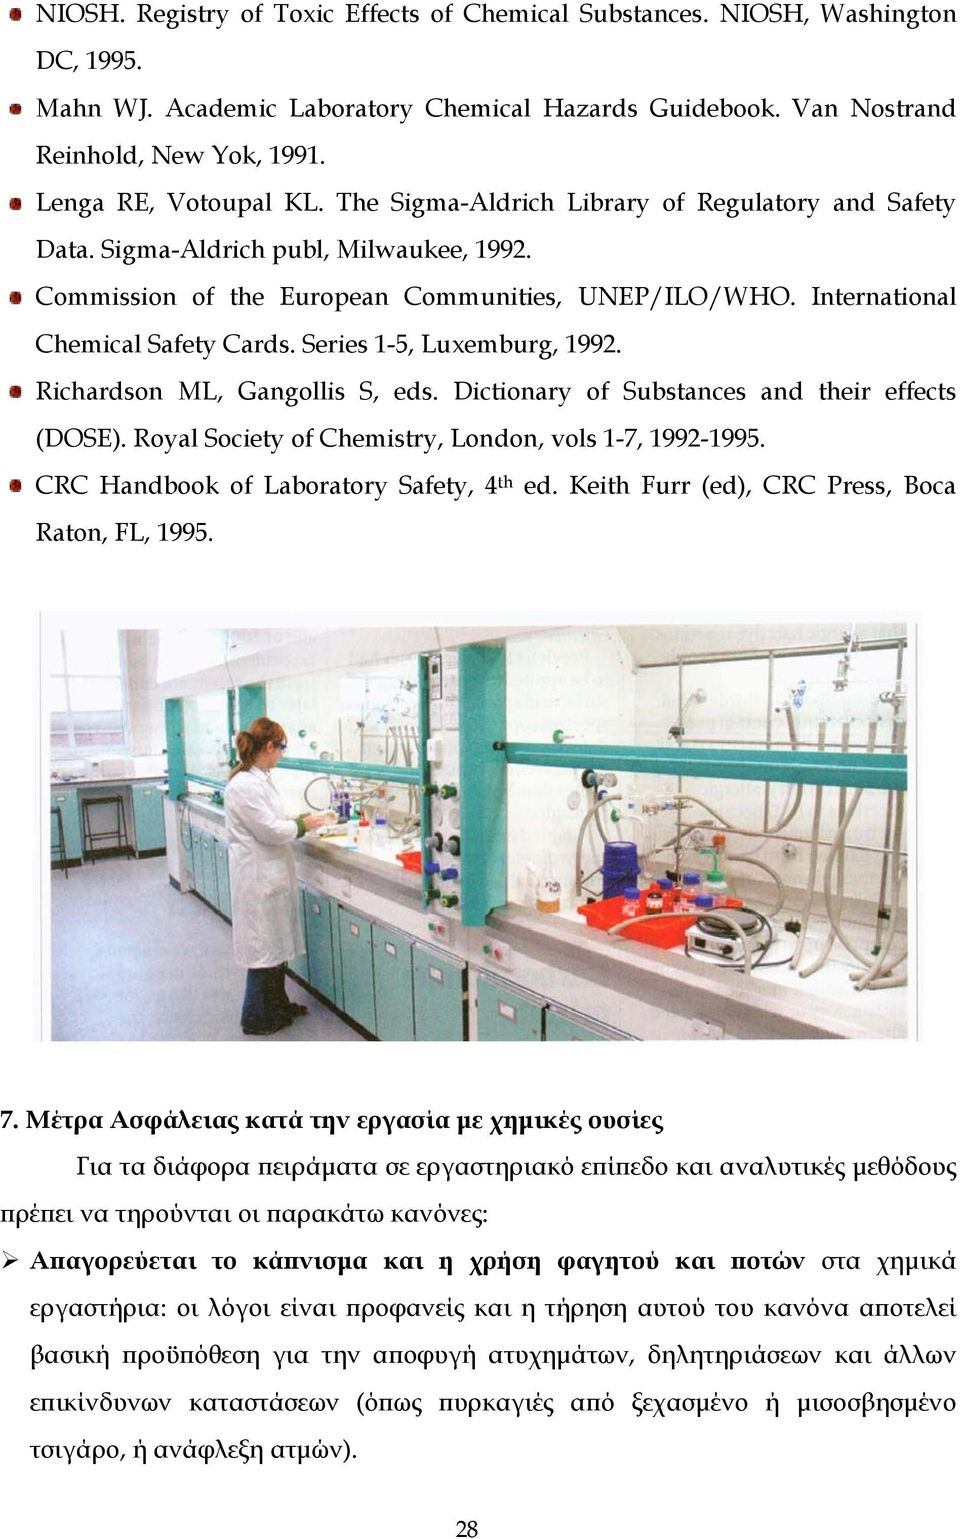 International Chemical Safety Cards. Series 1-5, Luxemburg, 1992. Richardson ML, Gangollis S, eds. Dictionary of Substances and their effects (DOSE).